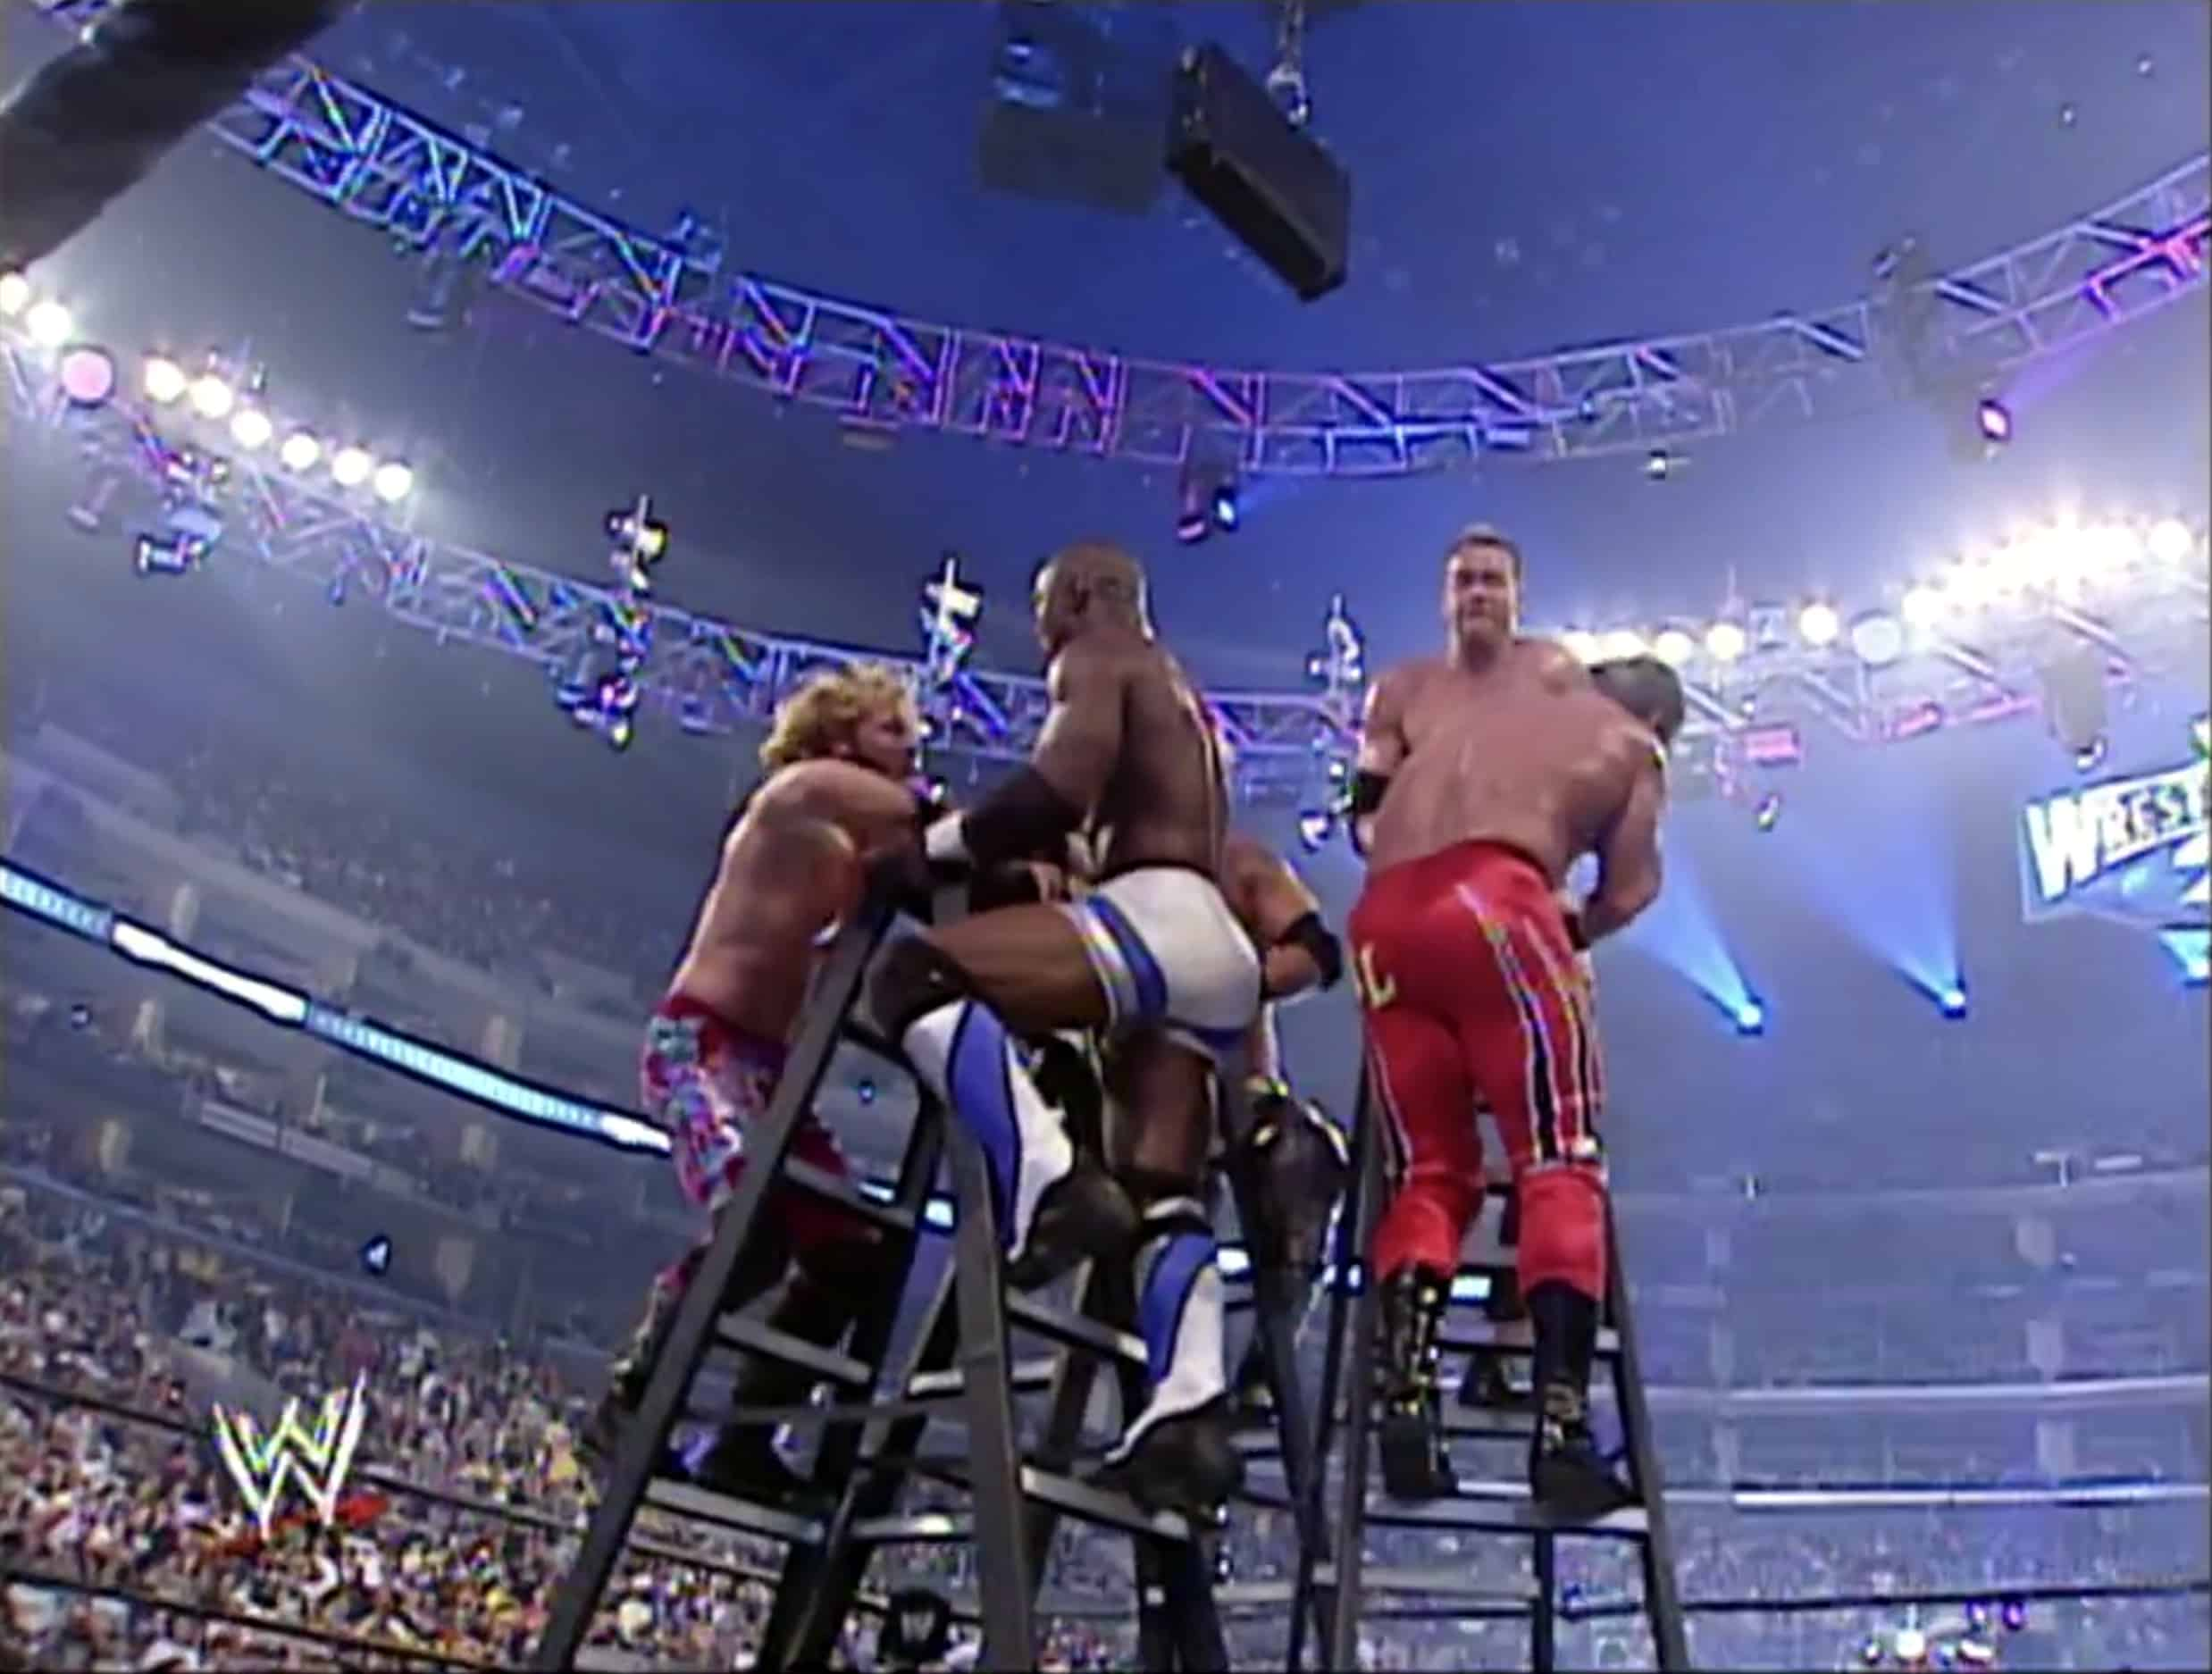 Chris Jericho, Shelton Benjamin, Edge, Christian, and Chris Jericho battle it out in the first-ever Money in the Bank Ladder match at WrestleMania 21, April 3, 2005.